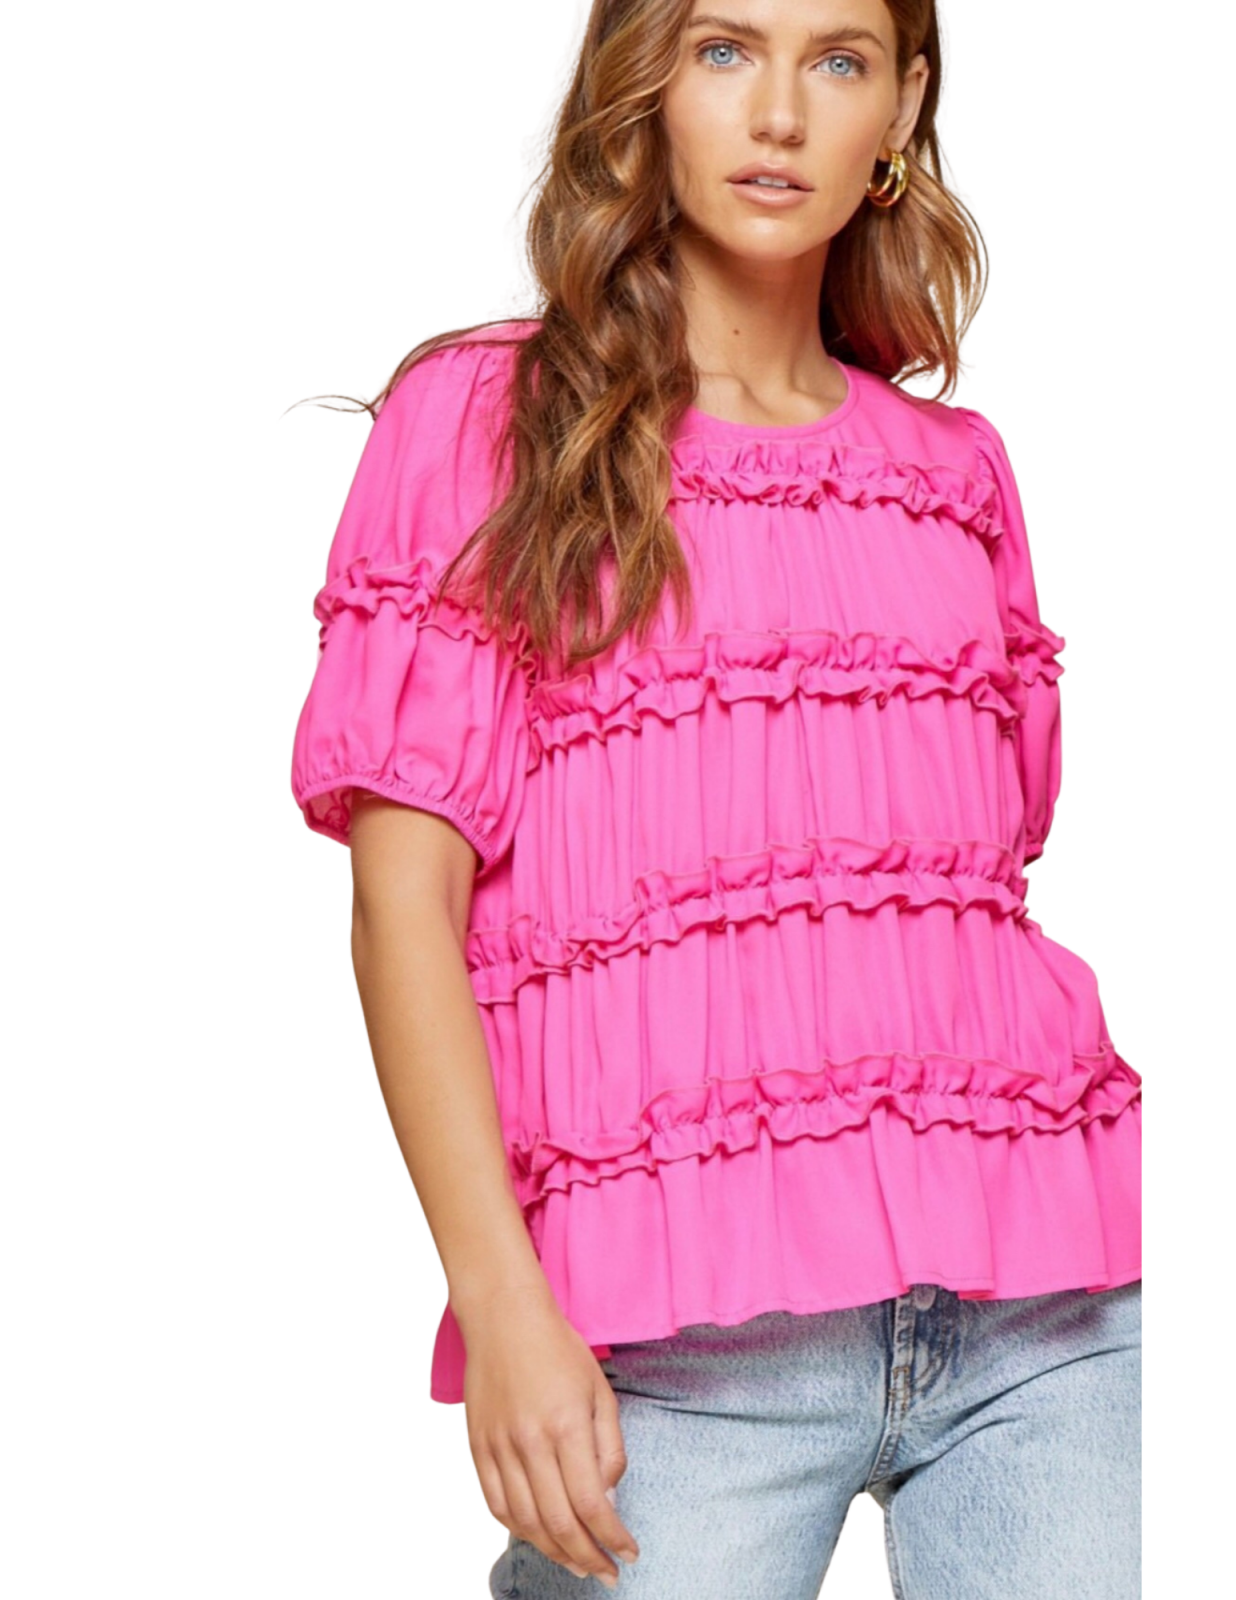 Ruffle Layers Short Sleeve Top